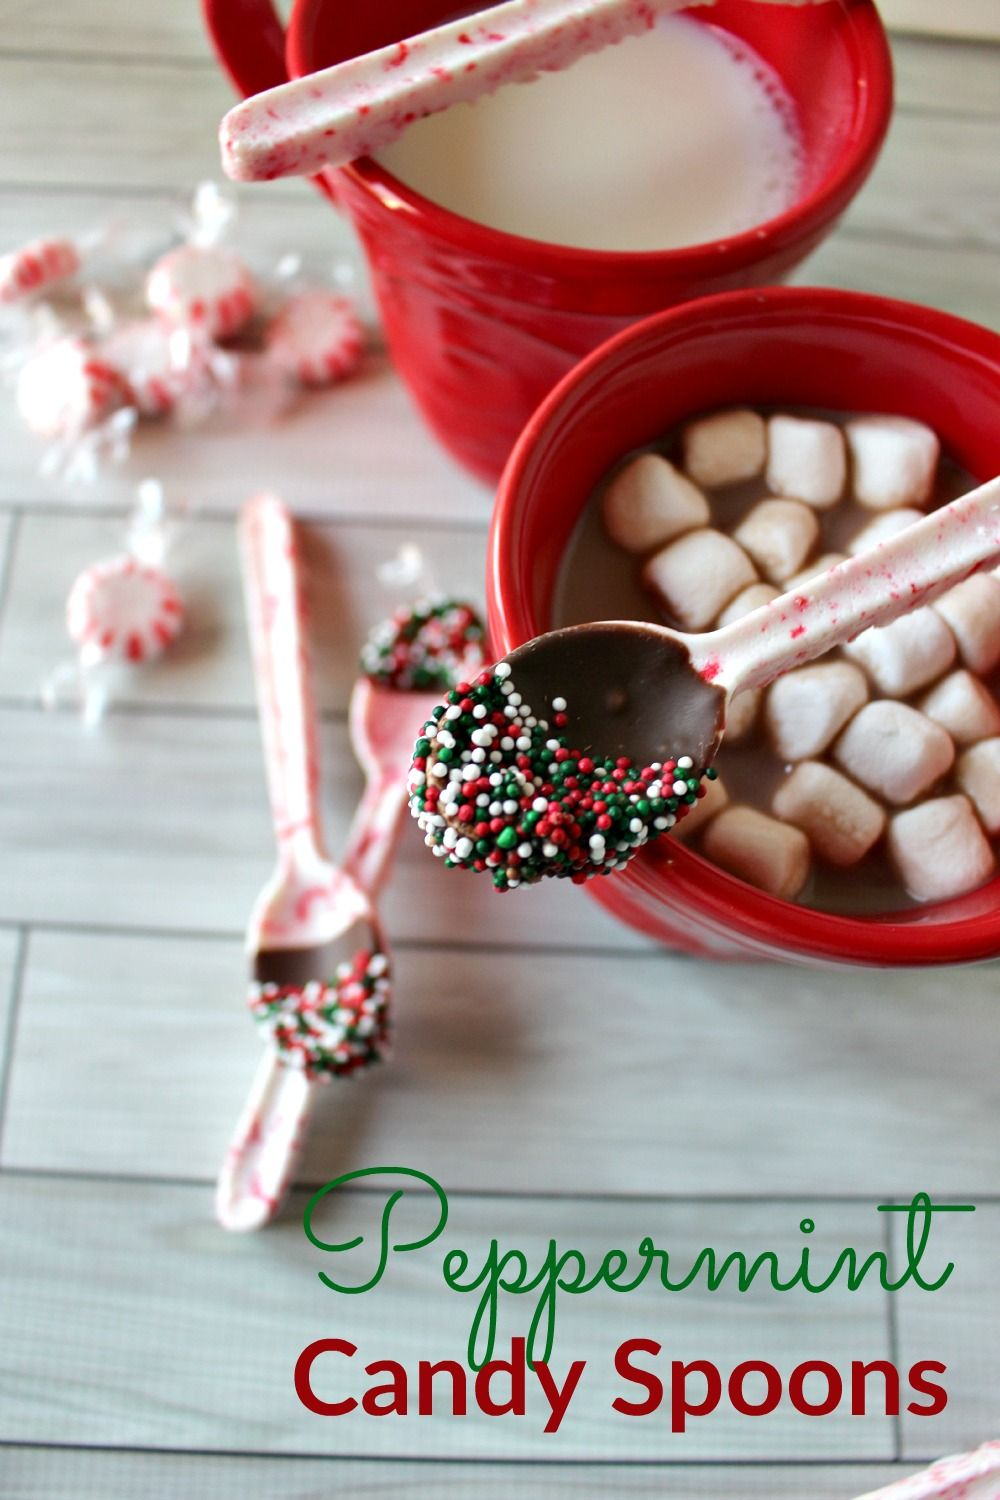 Mint candy recipes easy